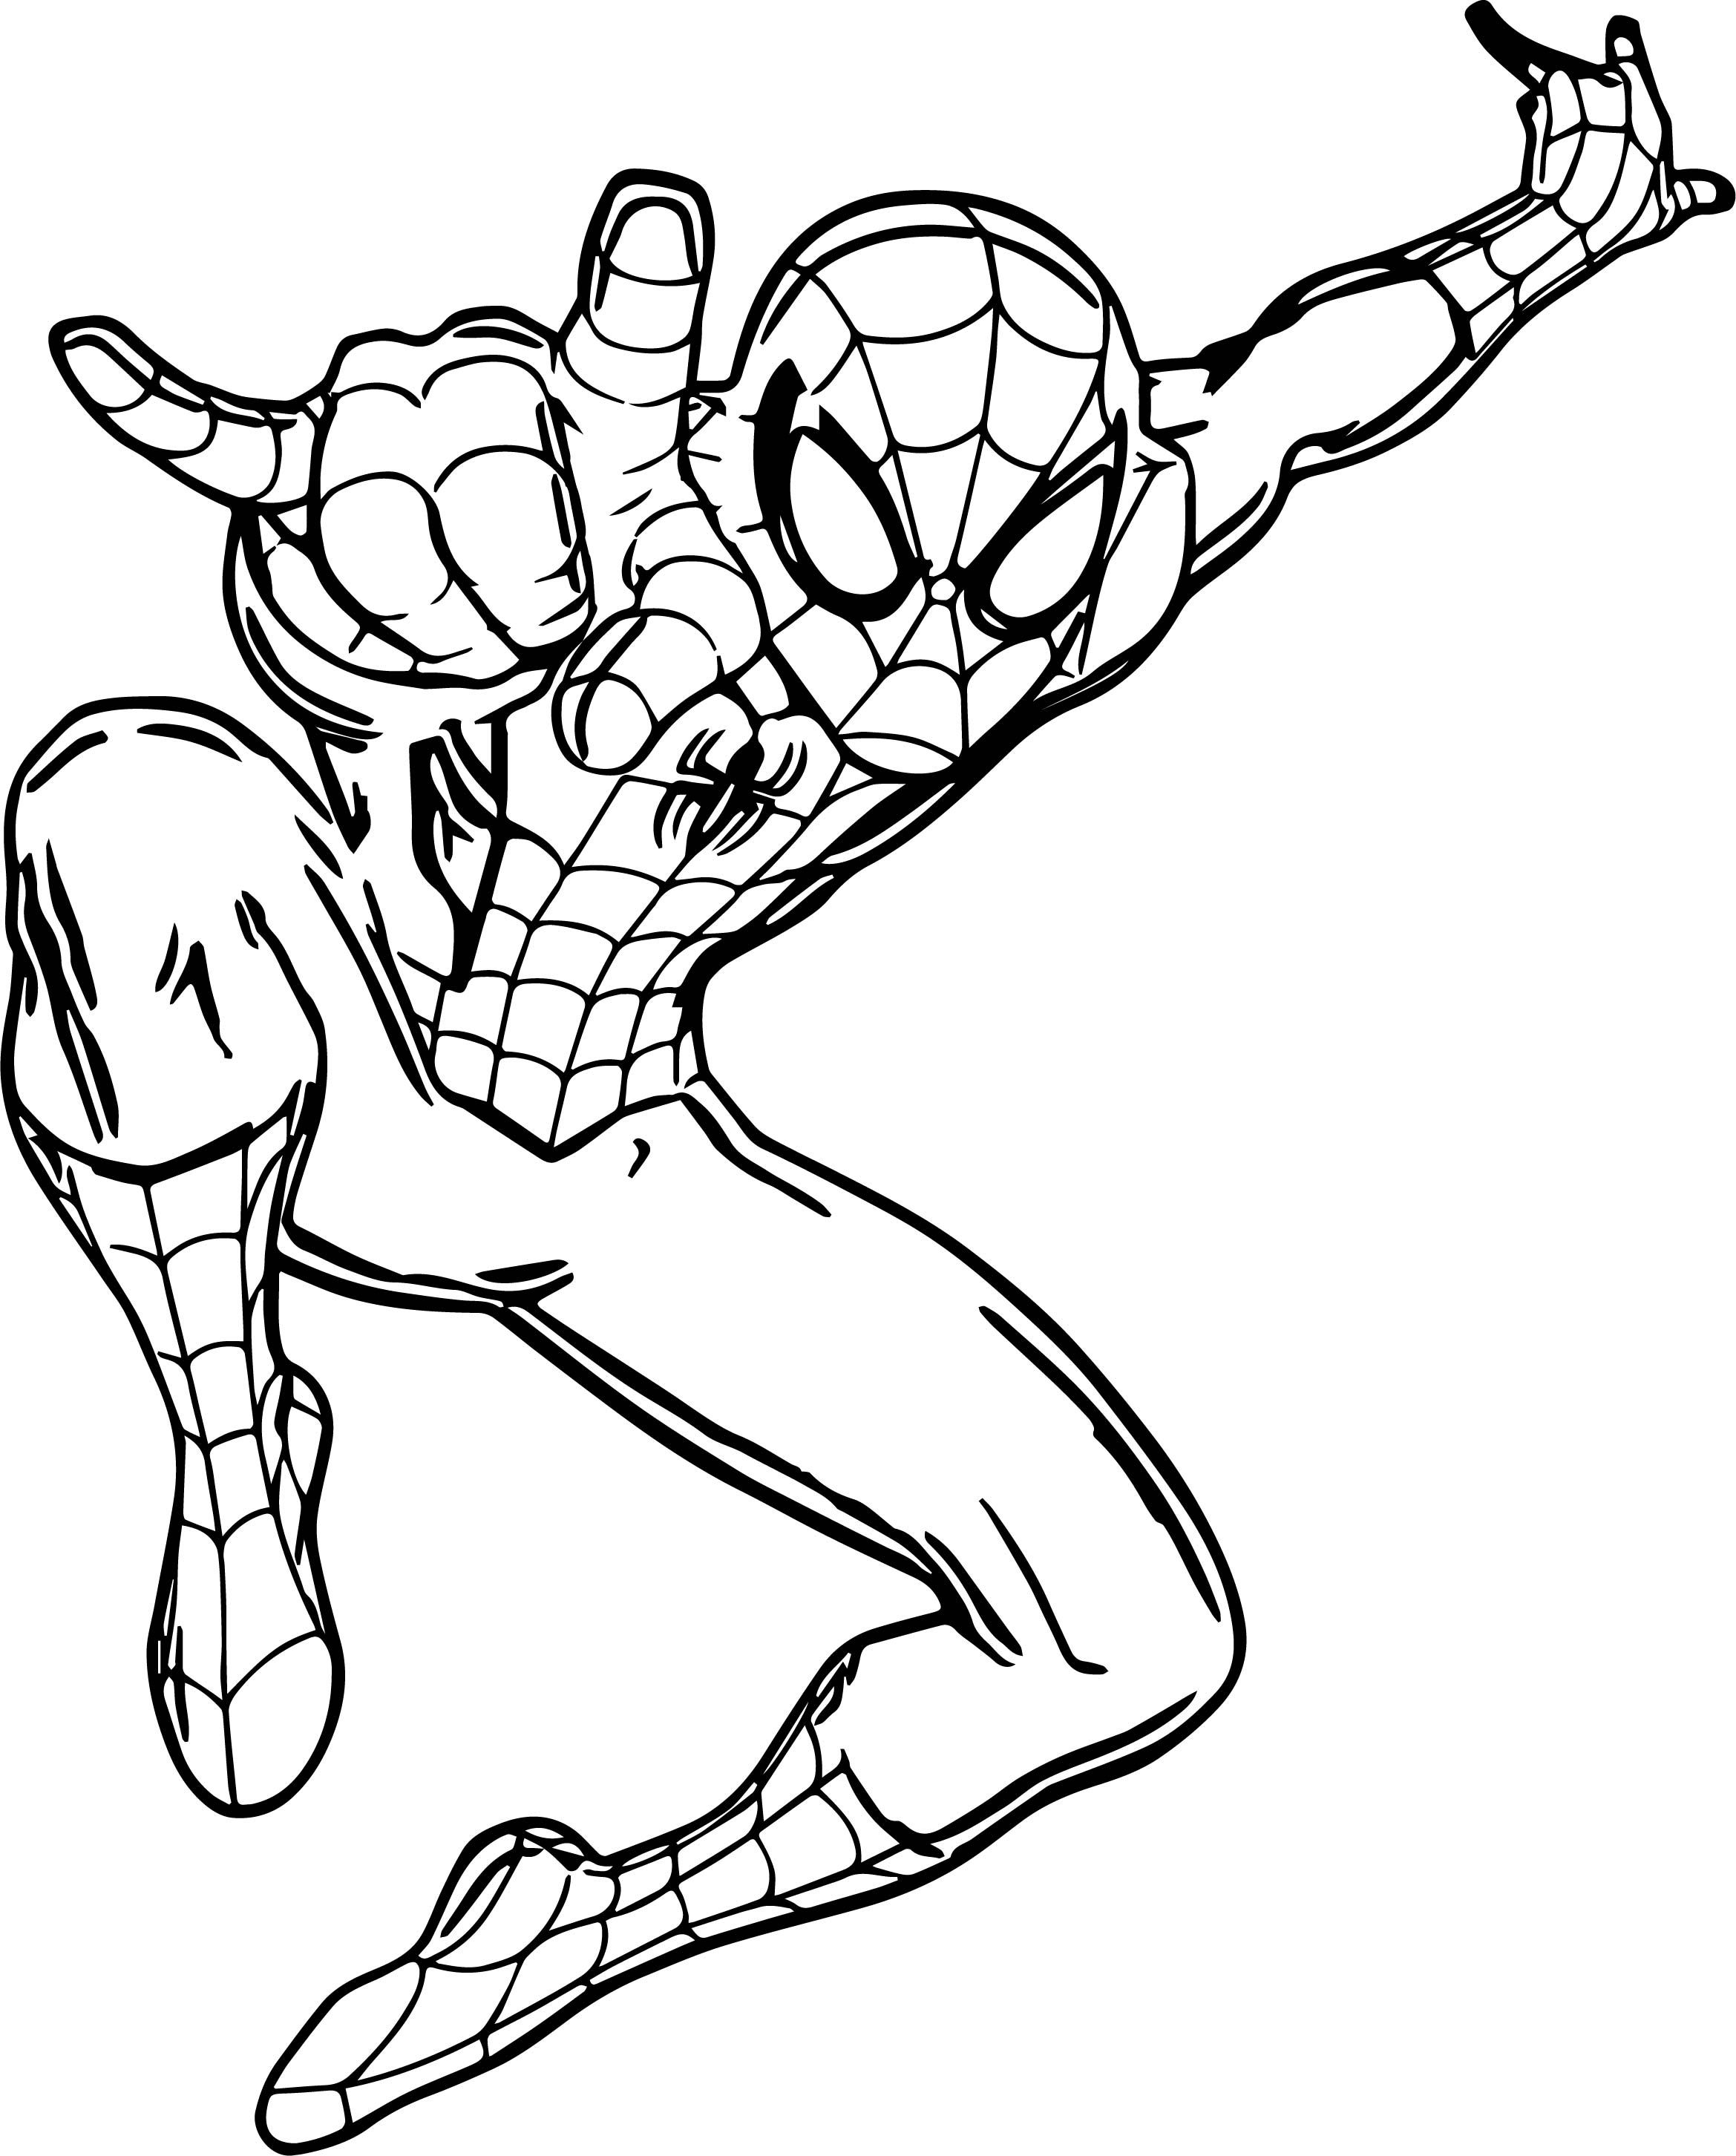 coloring kids spider man far from home coloring pages pin de magic color book em spiderman coloring pages free spider kids pages coloring far home coloring man from